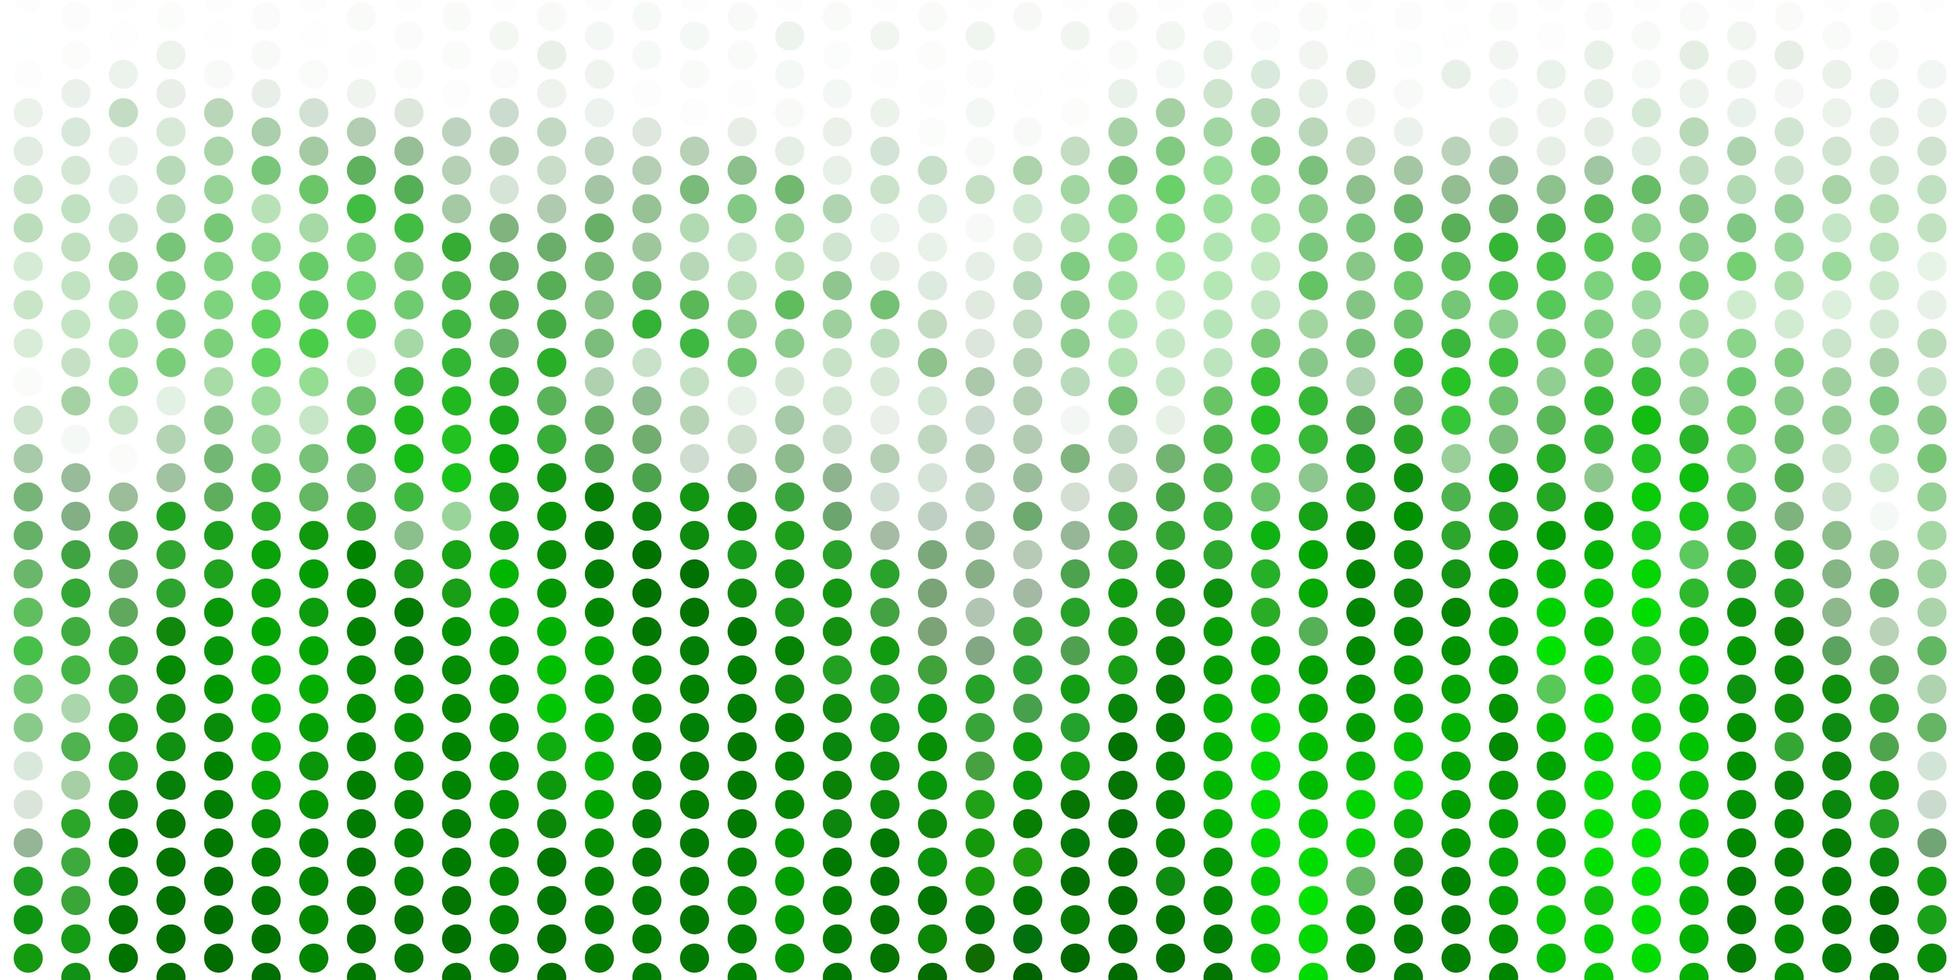 Light green vector layout with circle shapes.